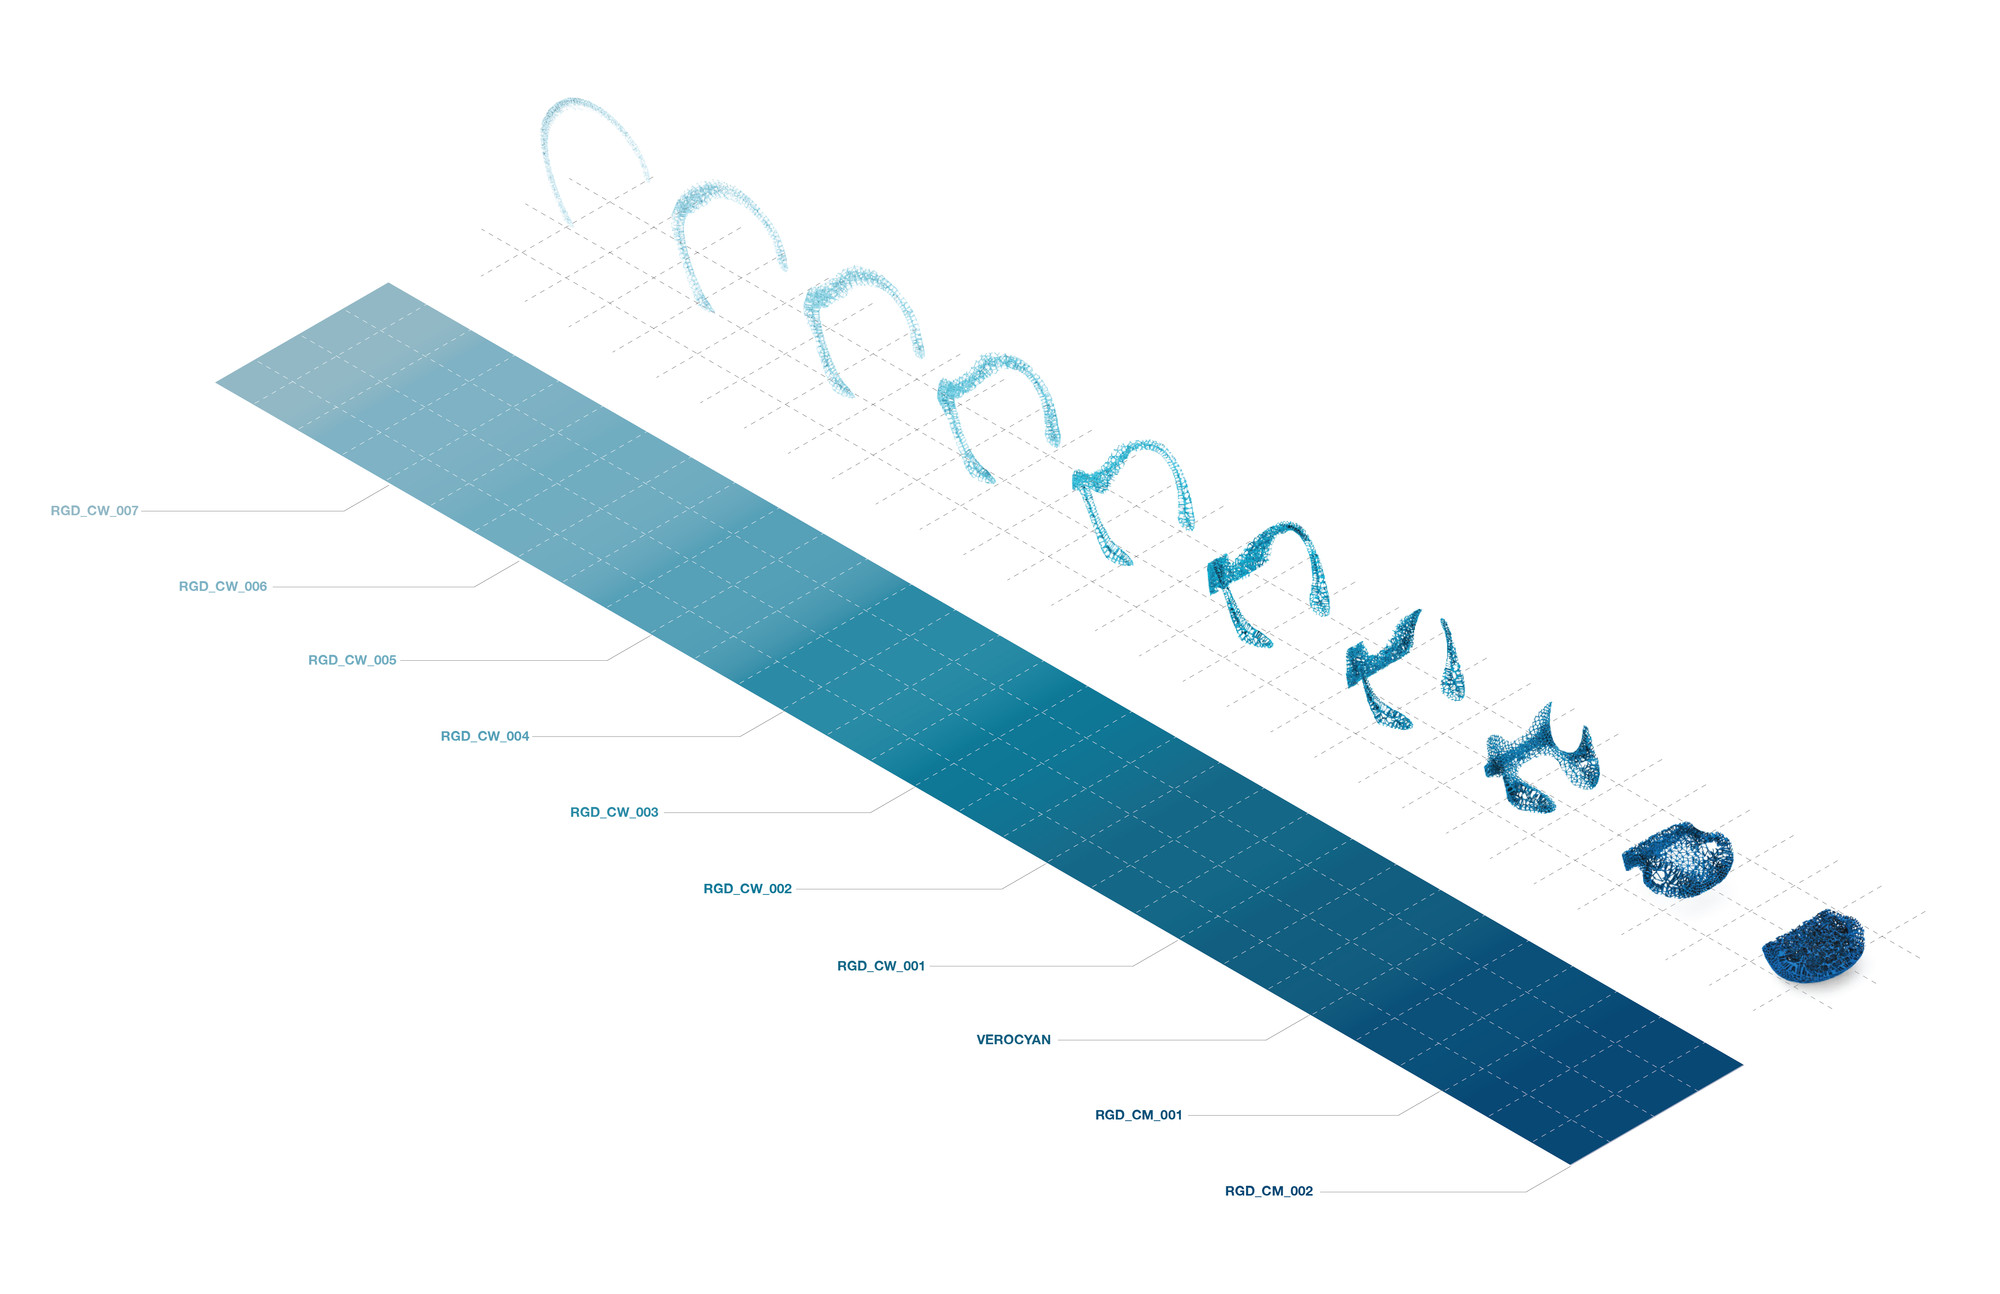 Diagram showing the various gradients of color and rigidity in the Durotaxis Chair's single print run. Image Courtesy of Synthesis Design + Architecture